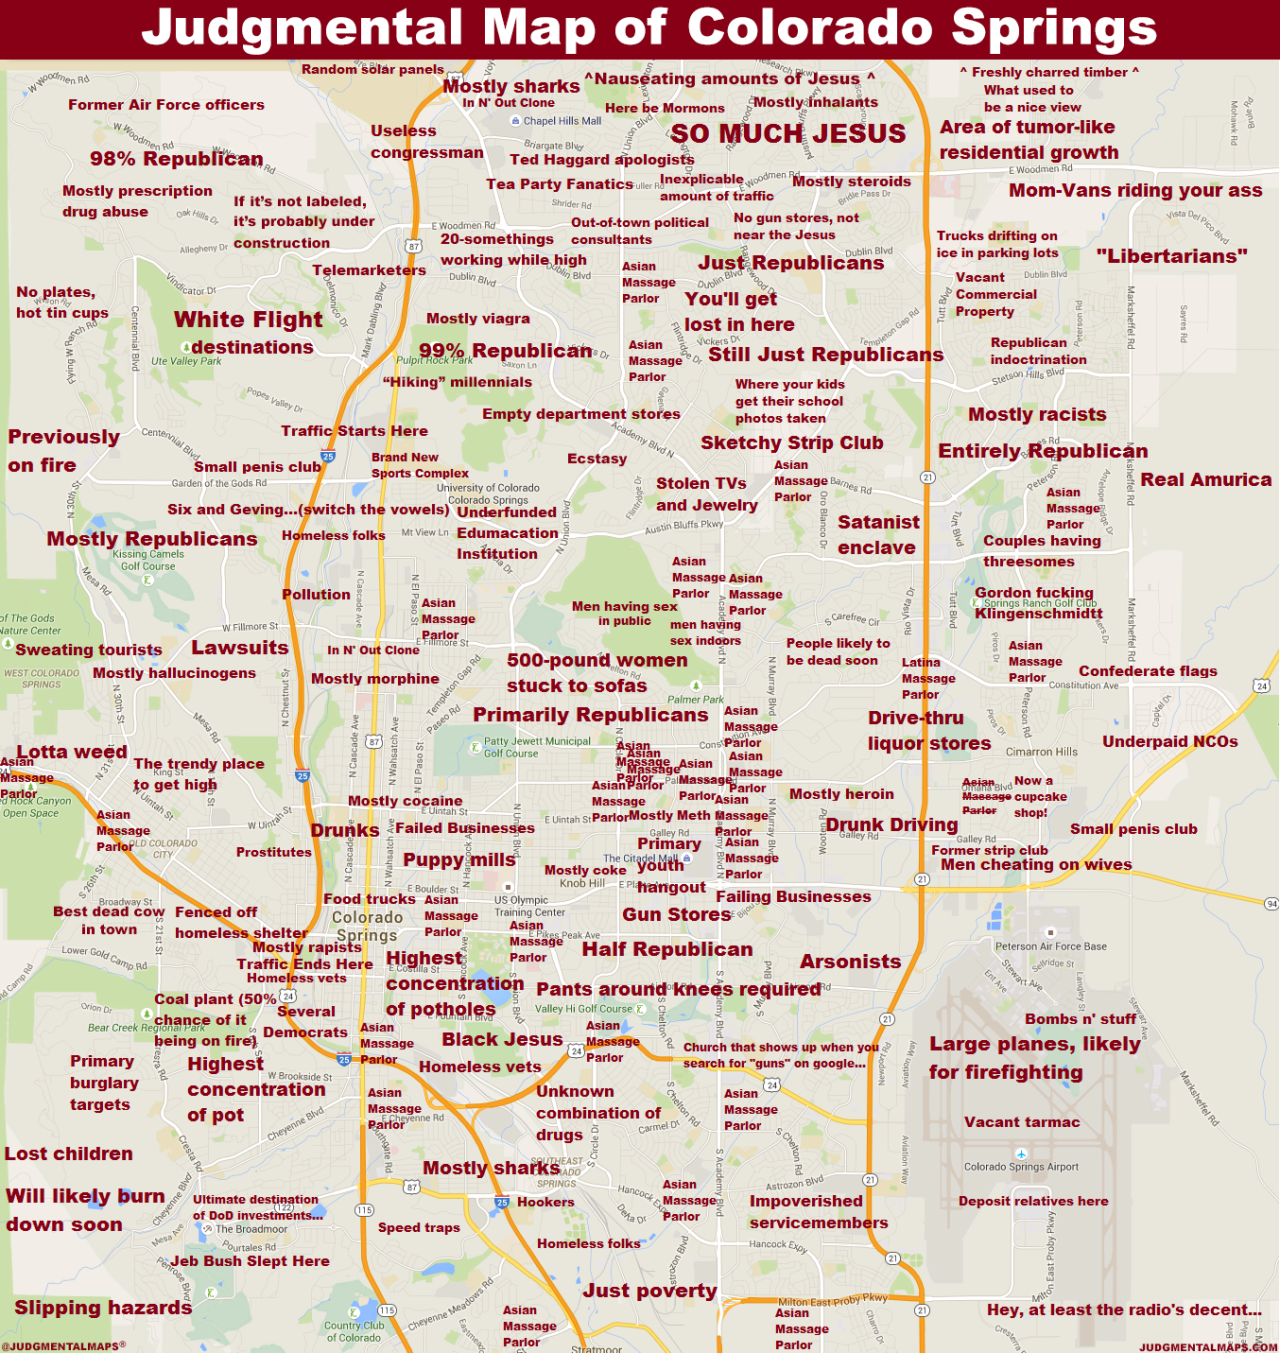 Colorado Springs Or Denver Where Should You Live: Colorado Springs, CO By Anonymous Copr. 2015 Judgmental